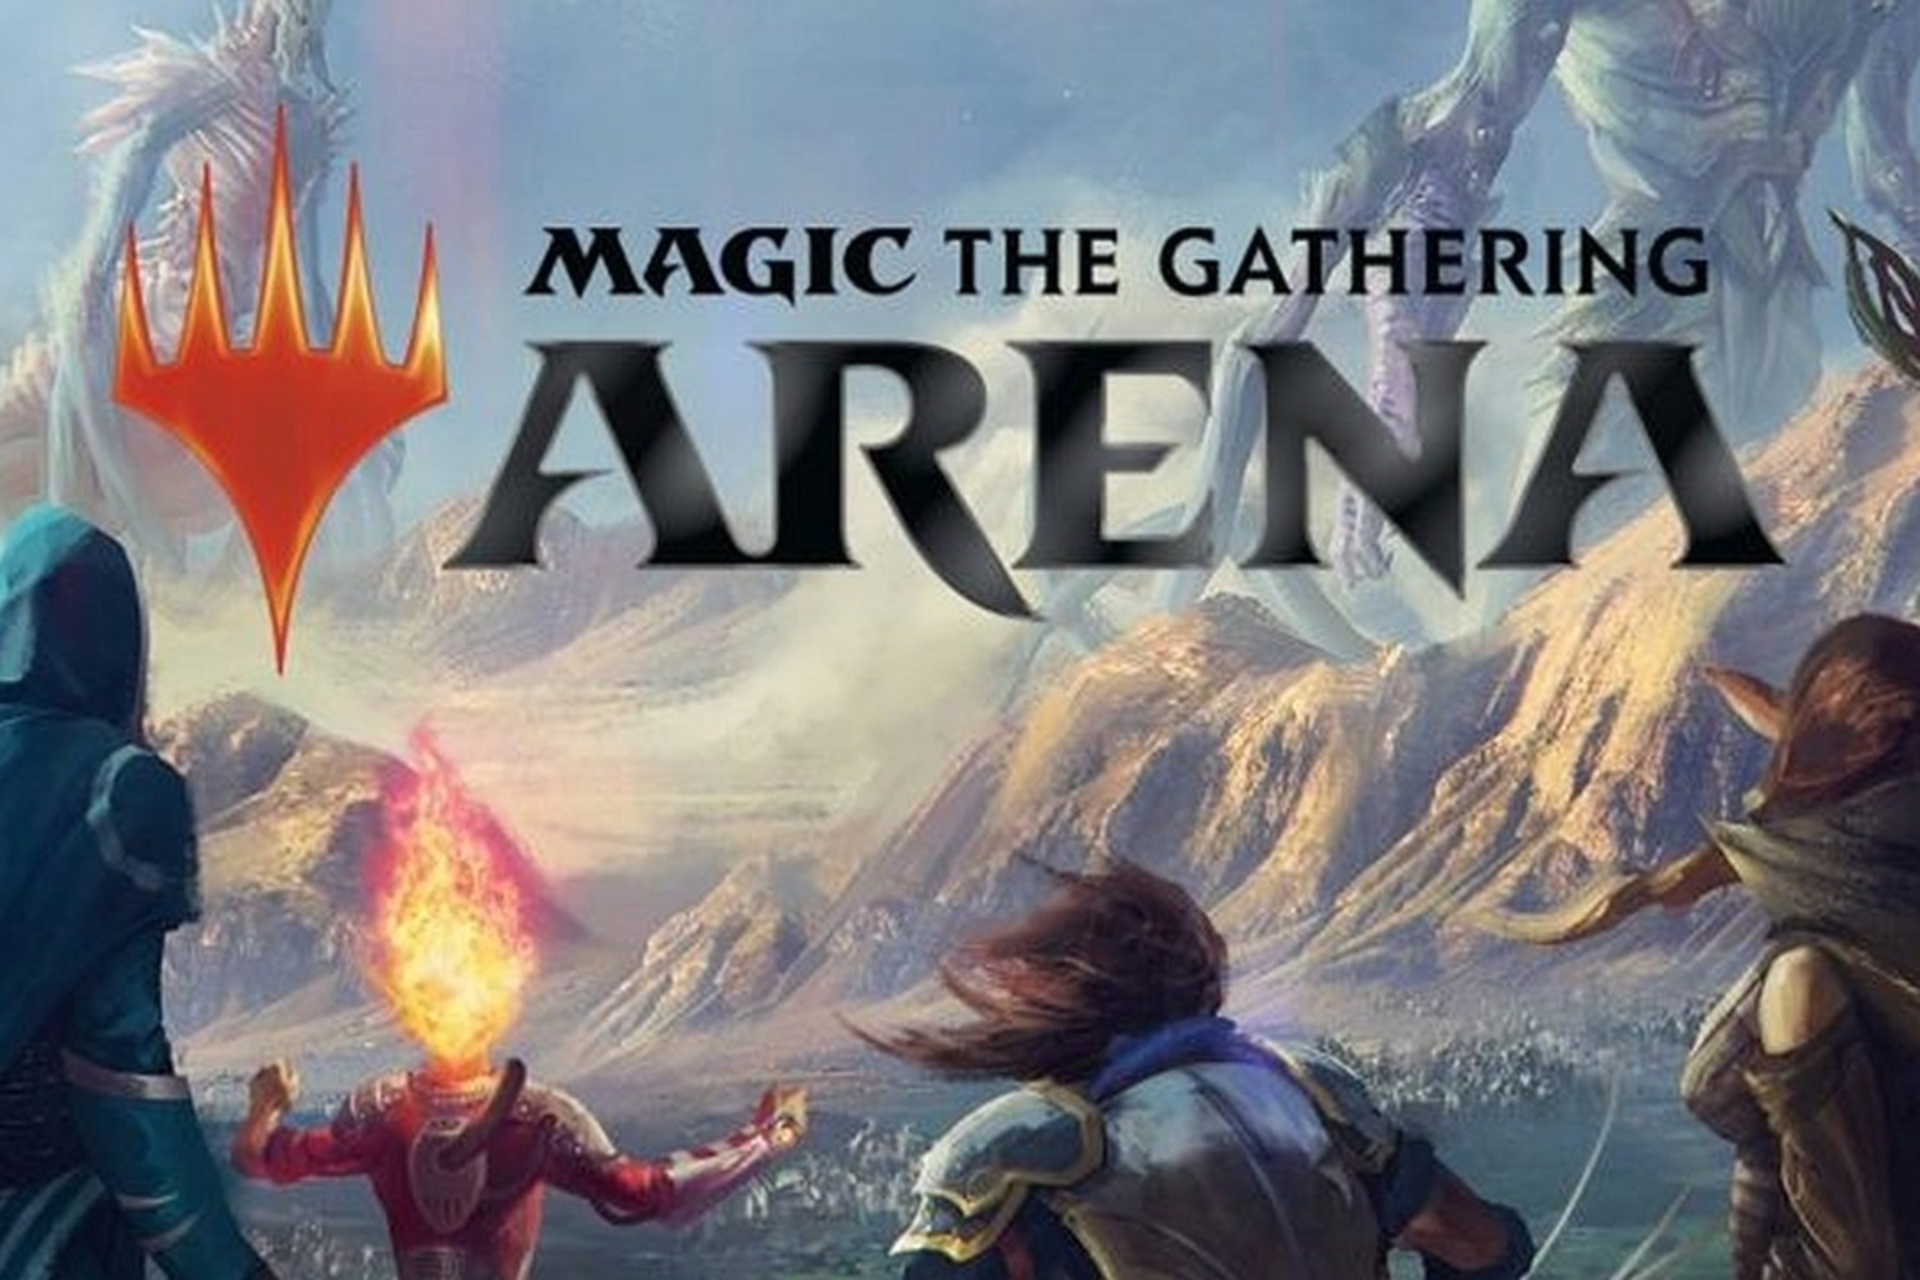 Magic: The Gathering Arena game